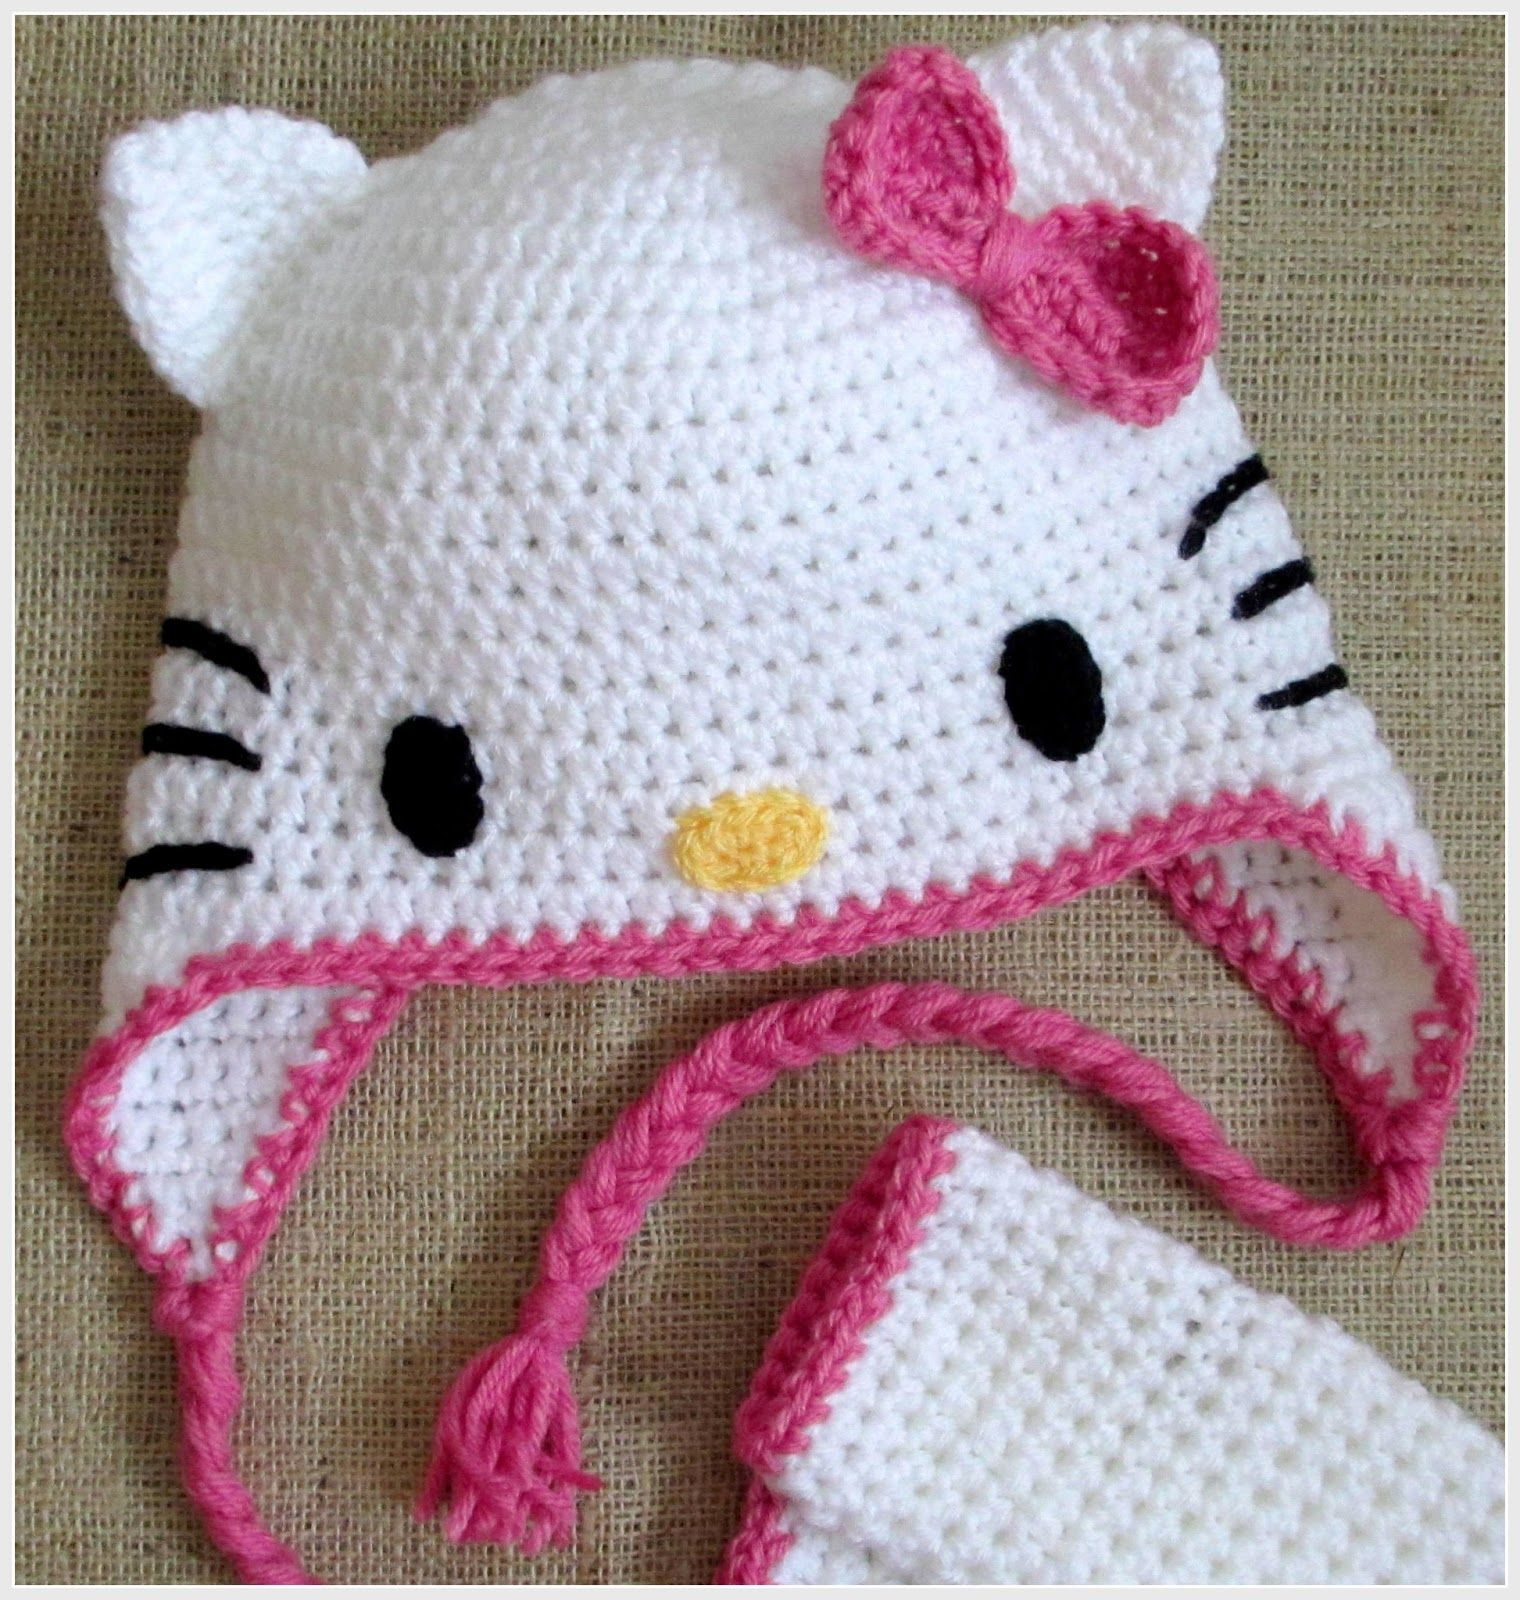 Crochet lady bug hat patterns hoffee and a nuffin hello kitty crochet lady bug hat patterns hoffee and a nuffin hello kitty cat ears bankloansurffo Gallery